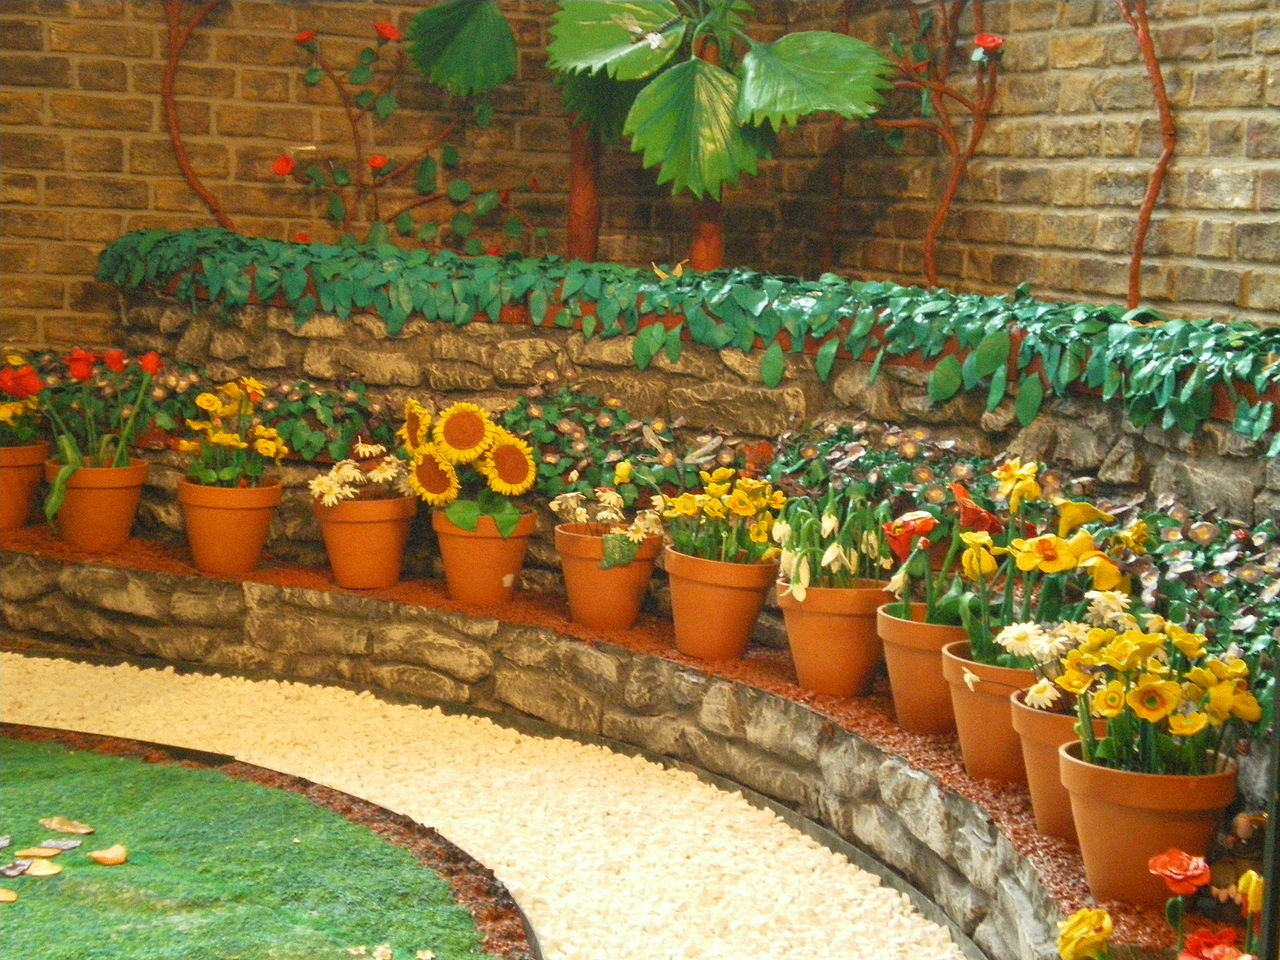 FilePlasticine garden potsjpg Wikimedia Commons